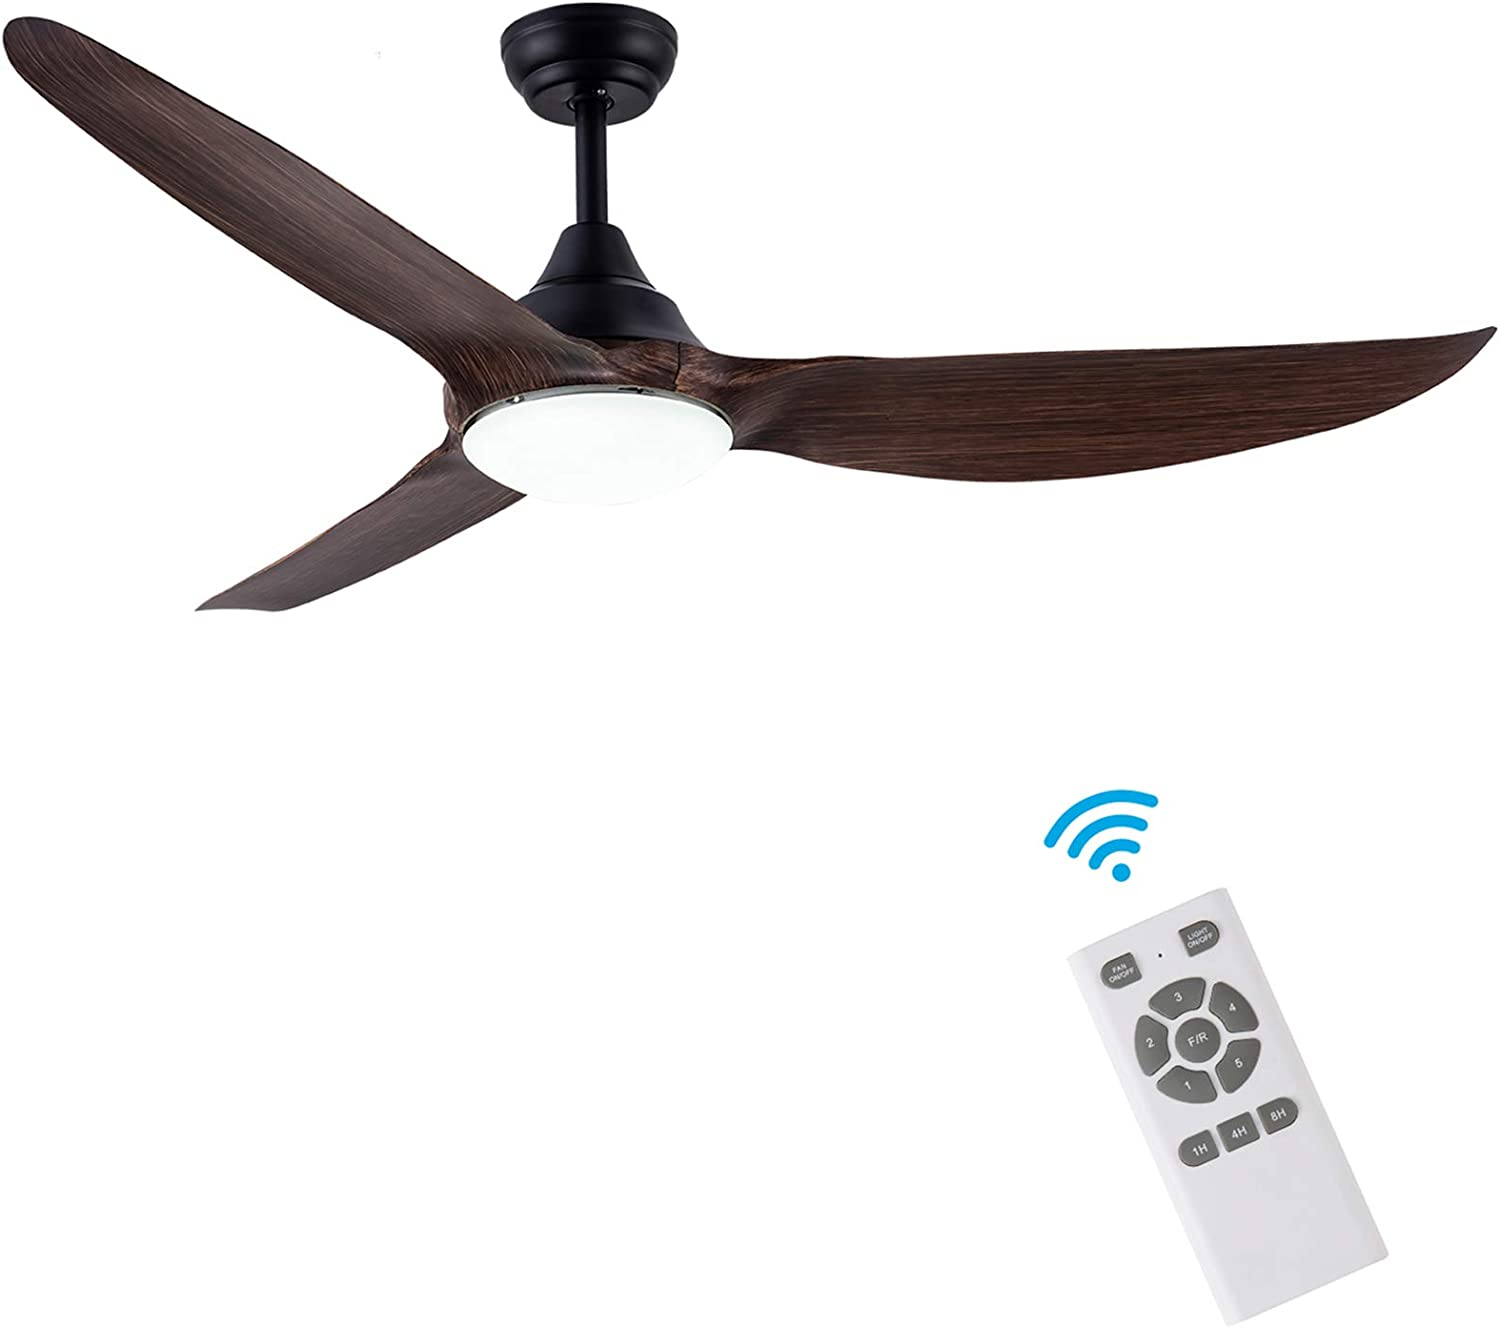 CJOY Ceiling Fan with Light, DC 58 Inch Modern Ceiling Fan with 3 Reversible Blades, 3000K, Remote Controls, 5 Speed, for Indoor/Outdoor